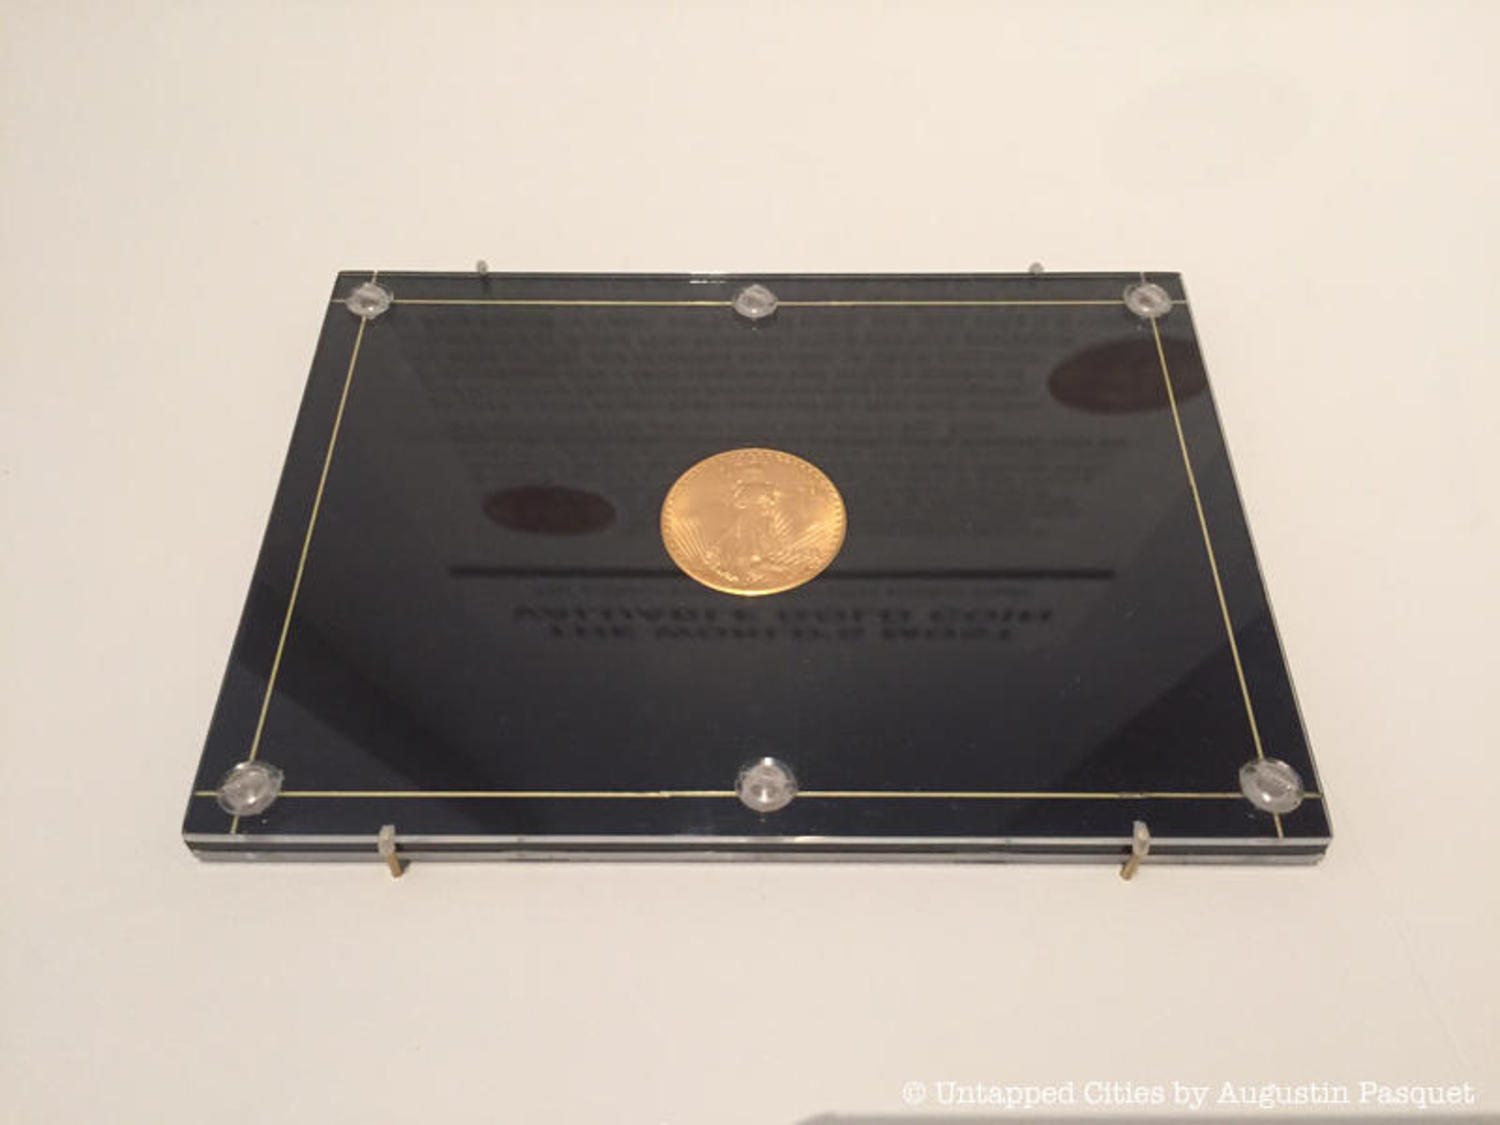 The World's Most Valuable Gold Coin